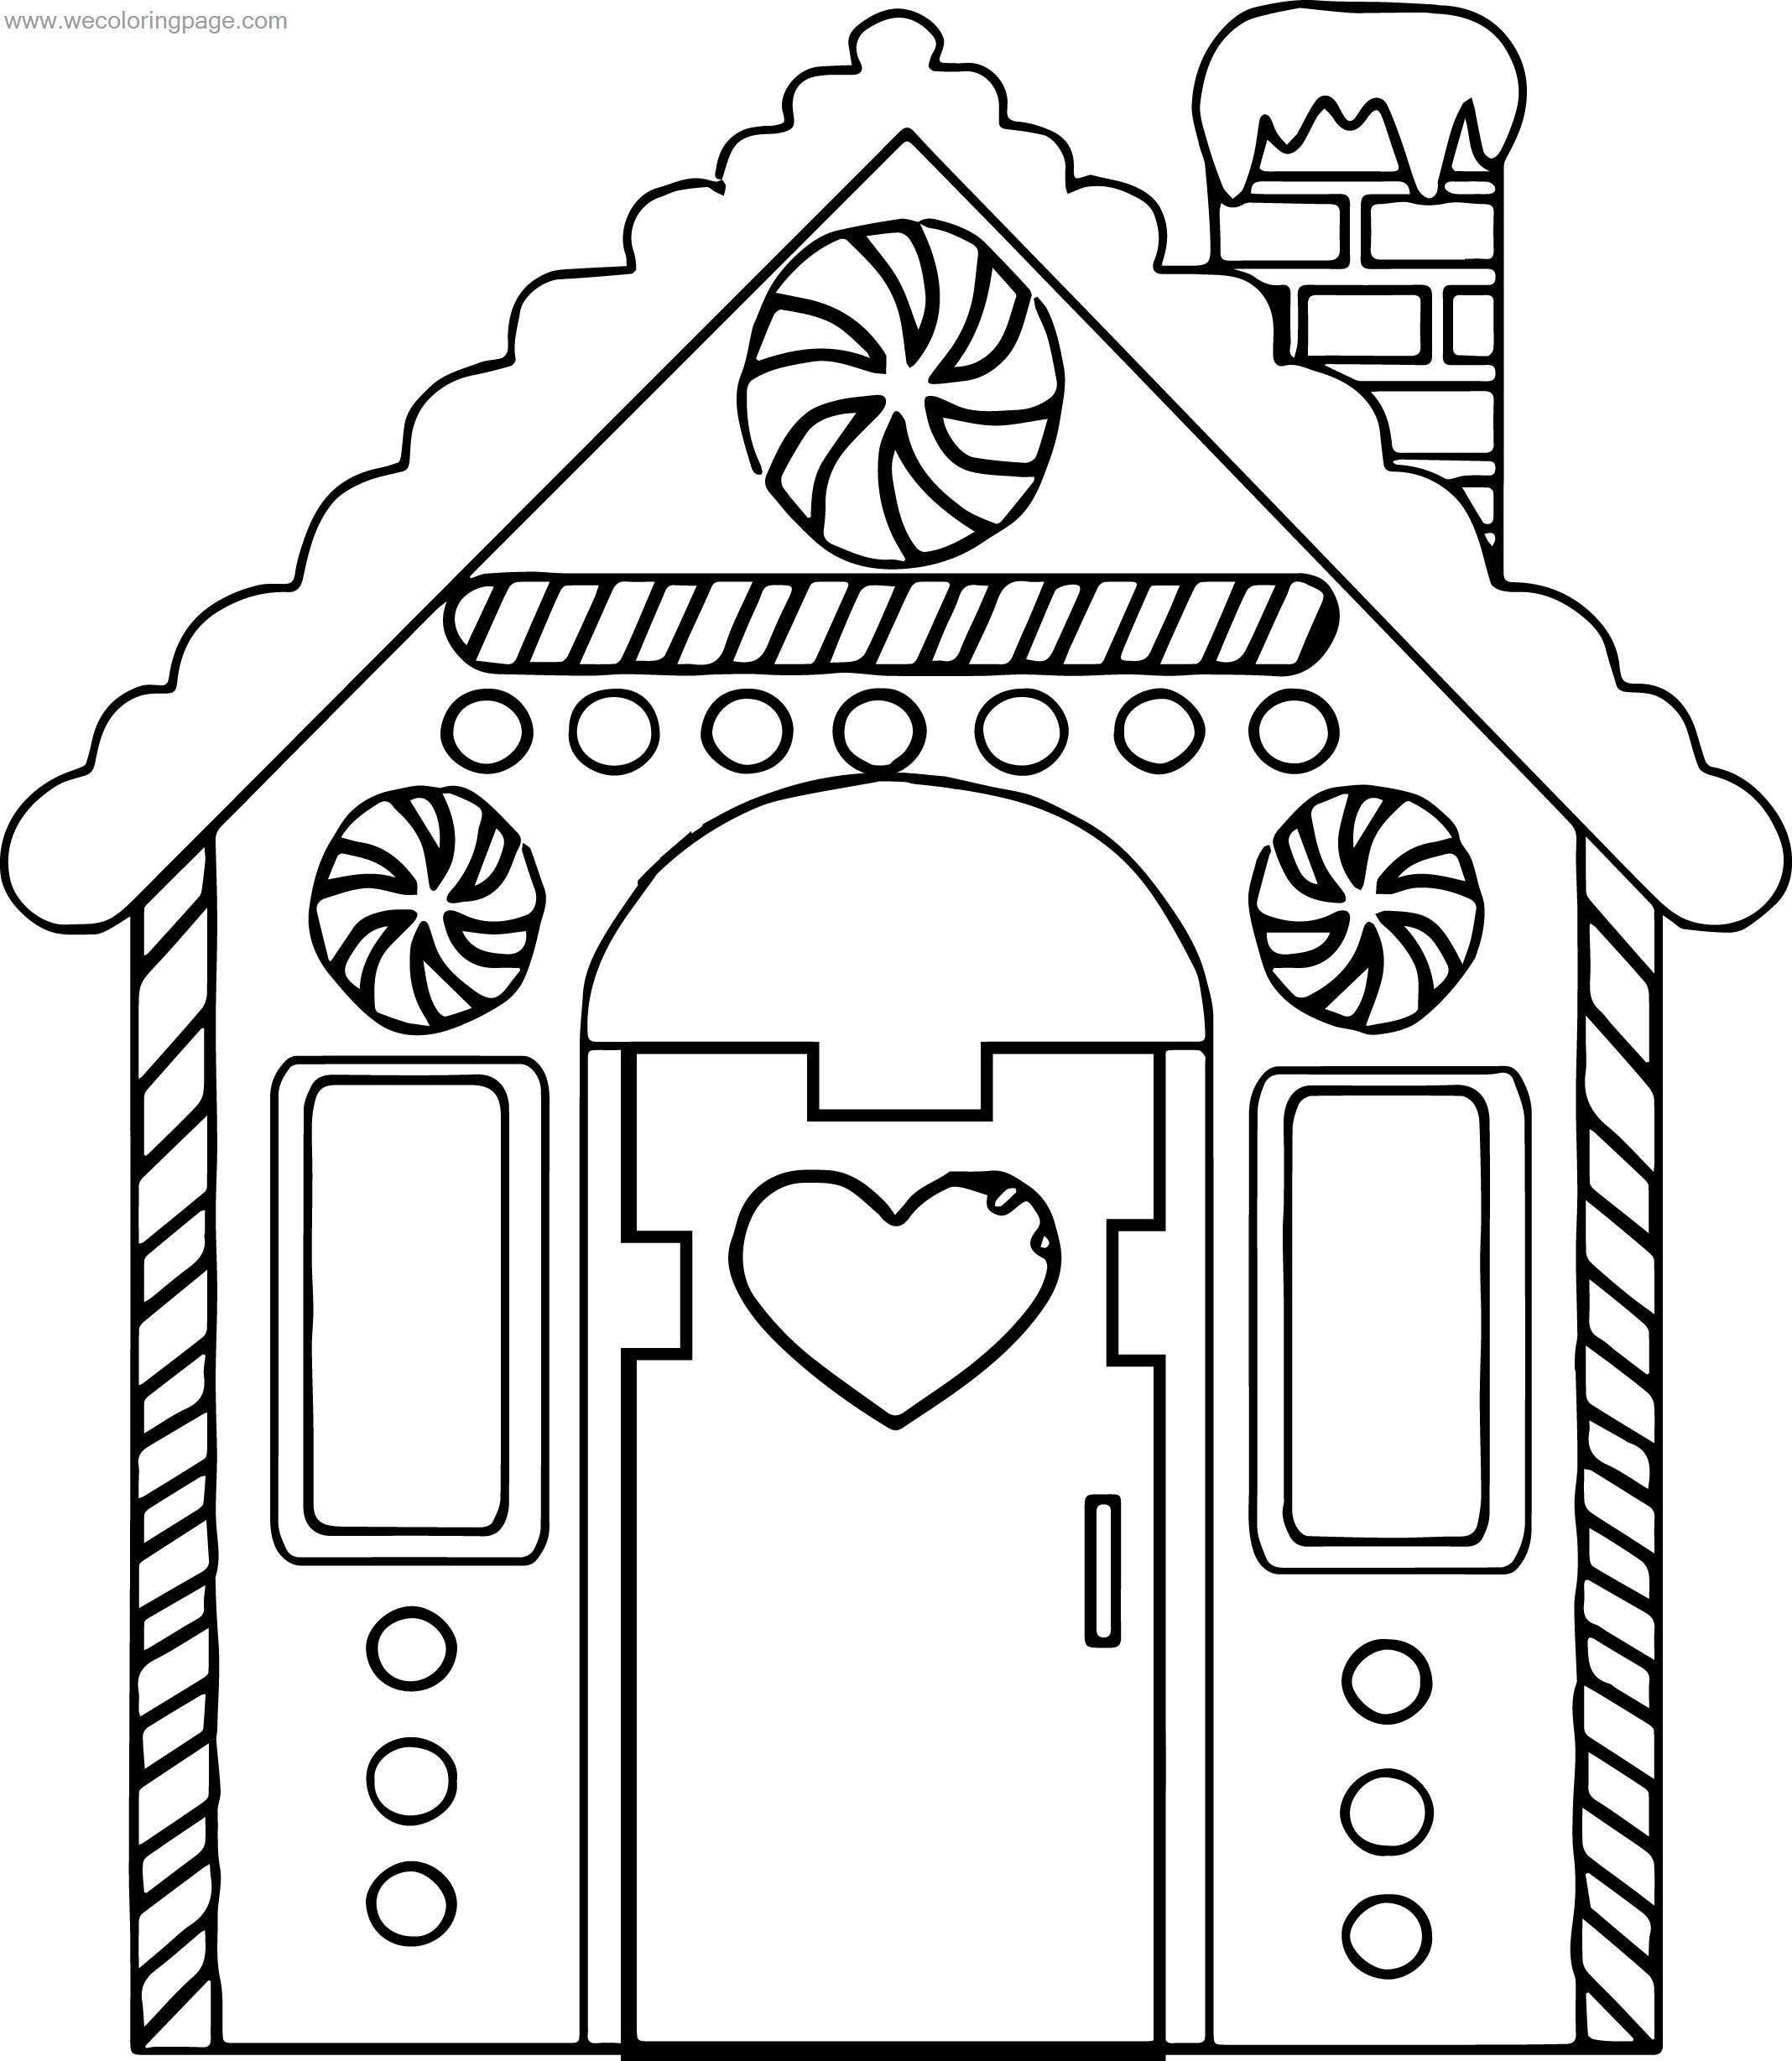 Heart Gingerbread House Front View Coloring Page